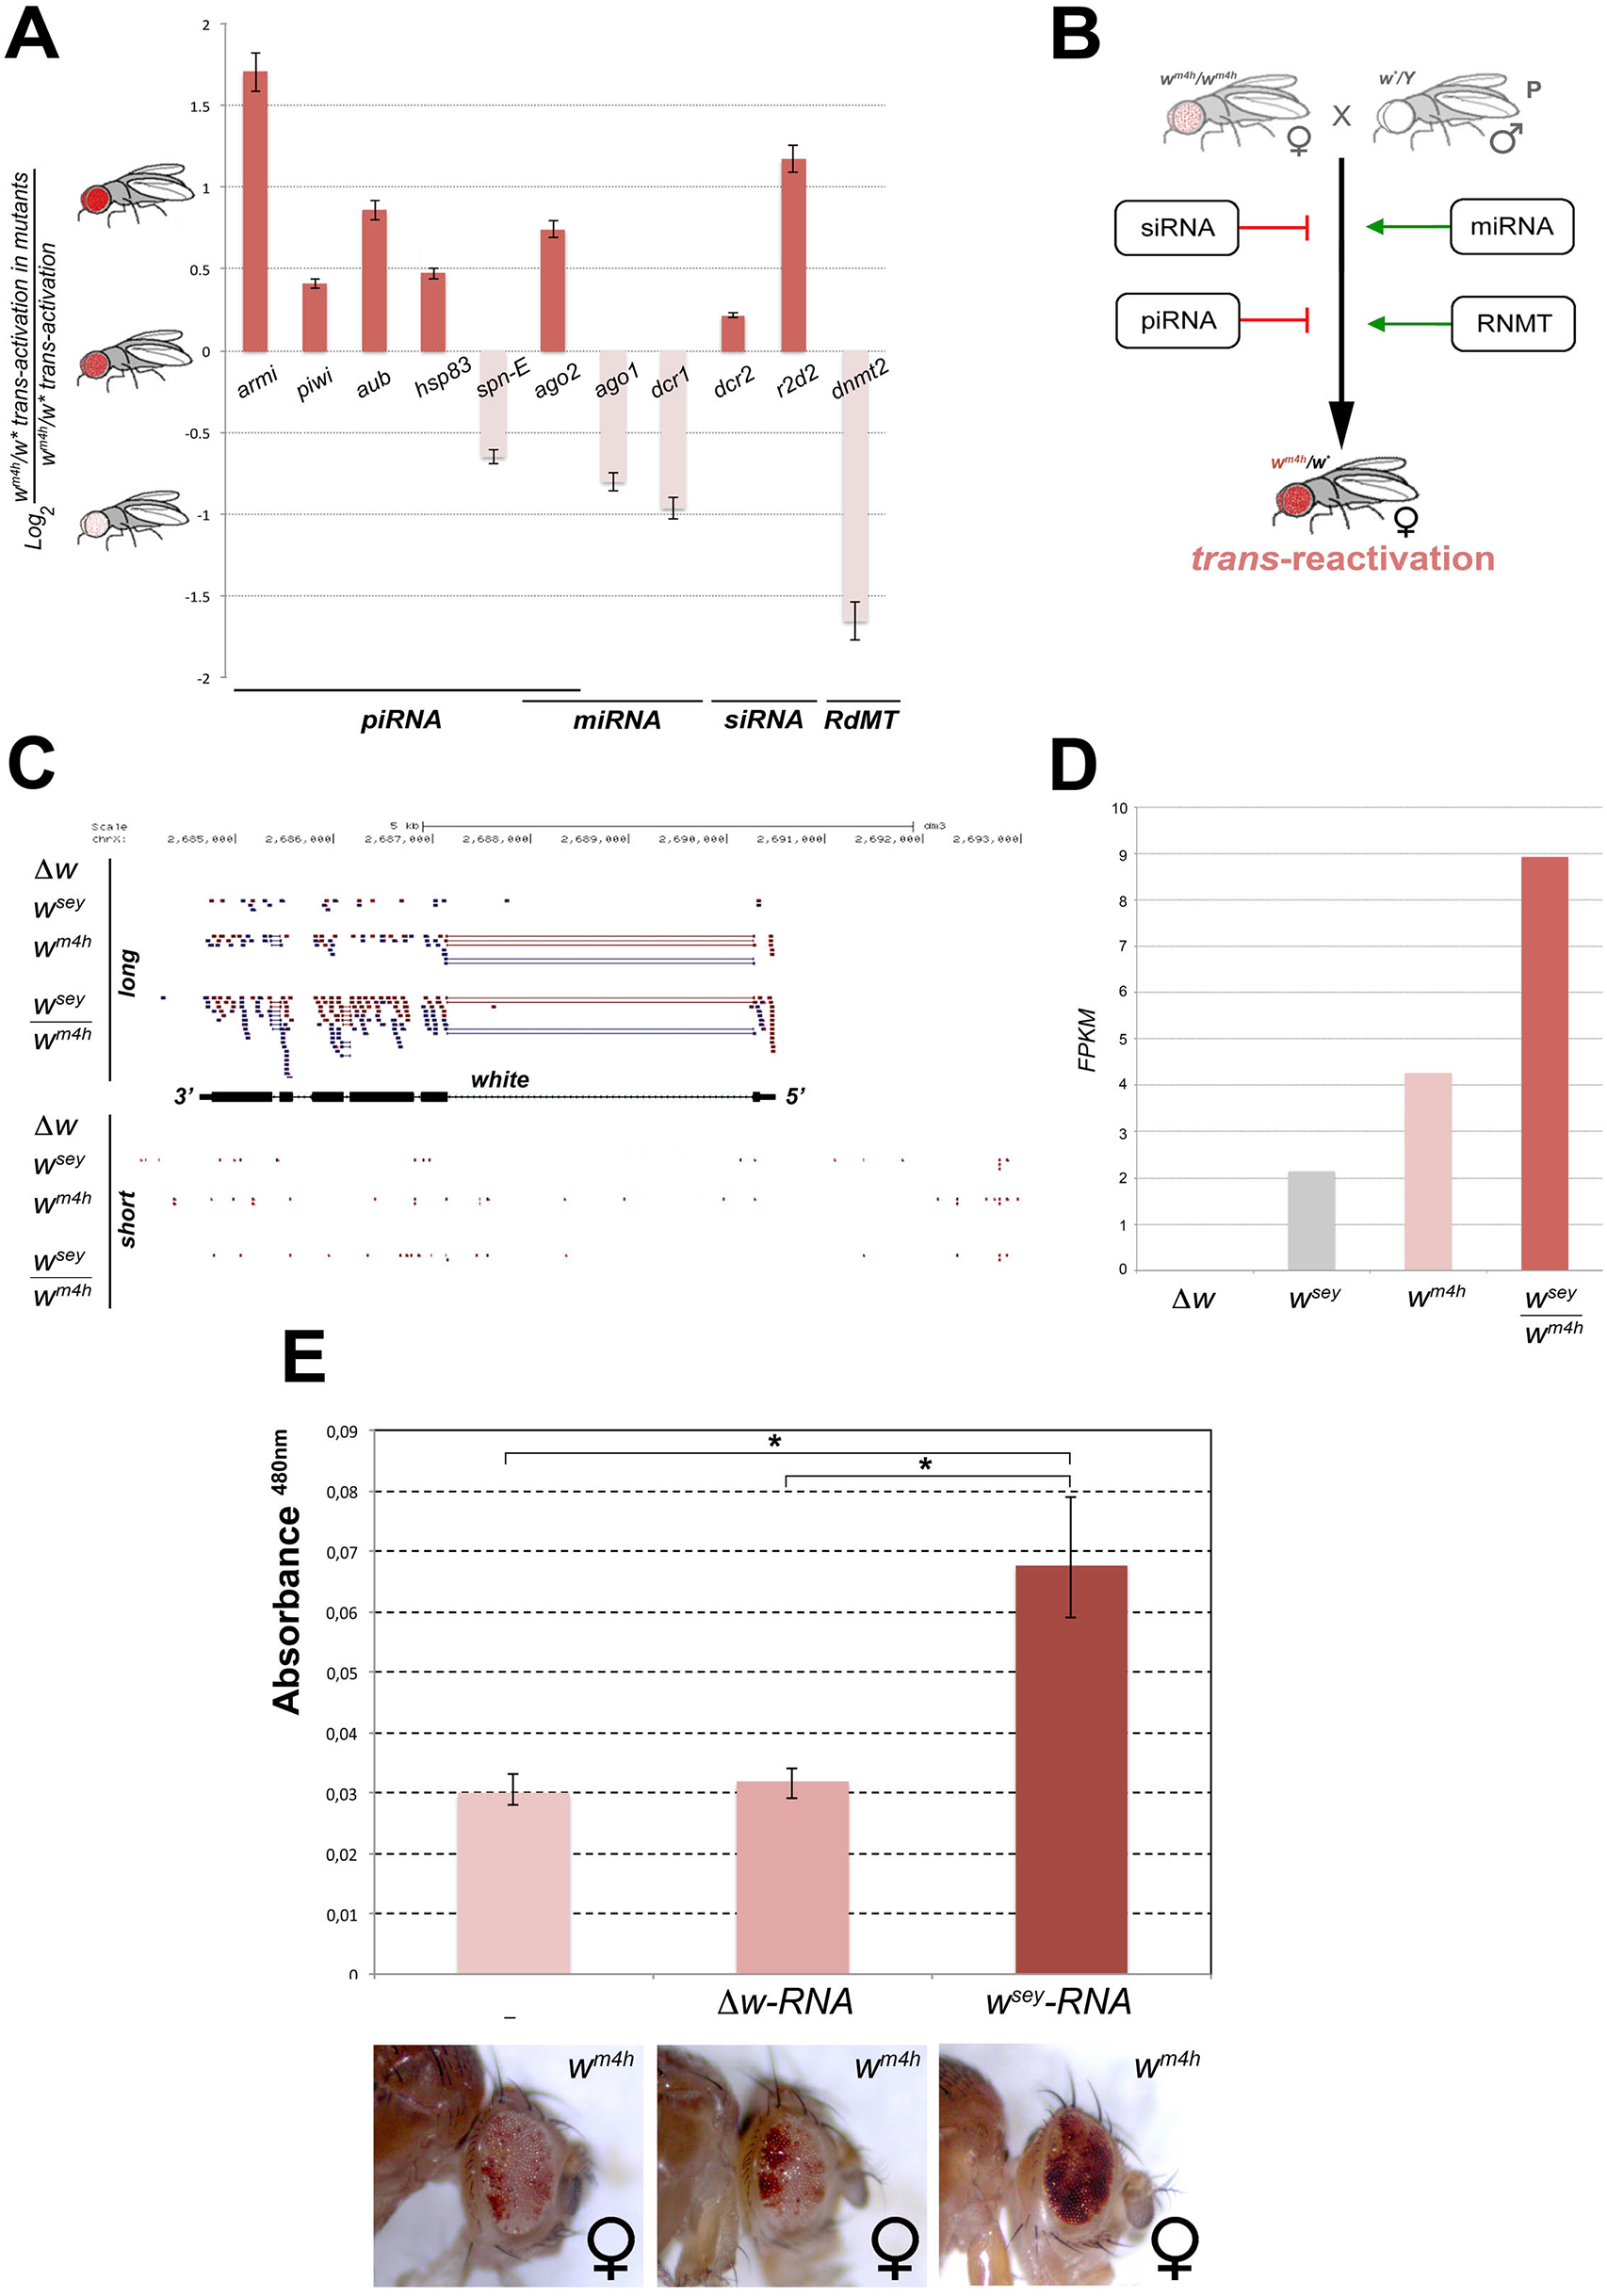 Mutations in genes encoding for factors involved in PTGS and RNA methylation influence <i>trans</i>-reactivation.